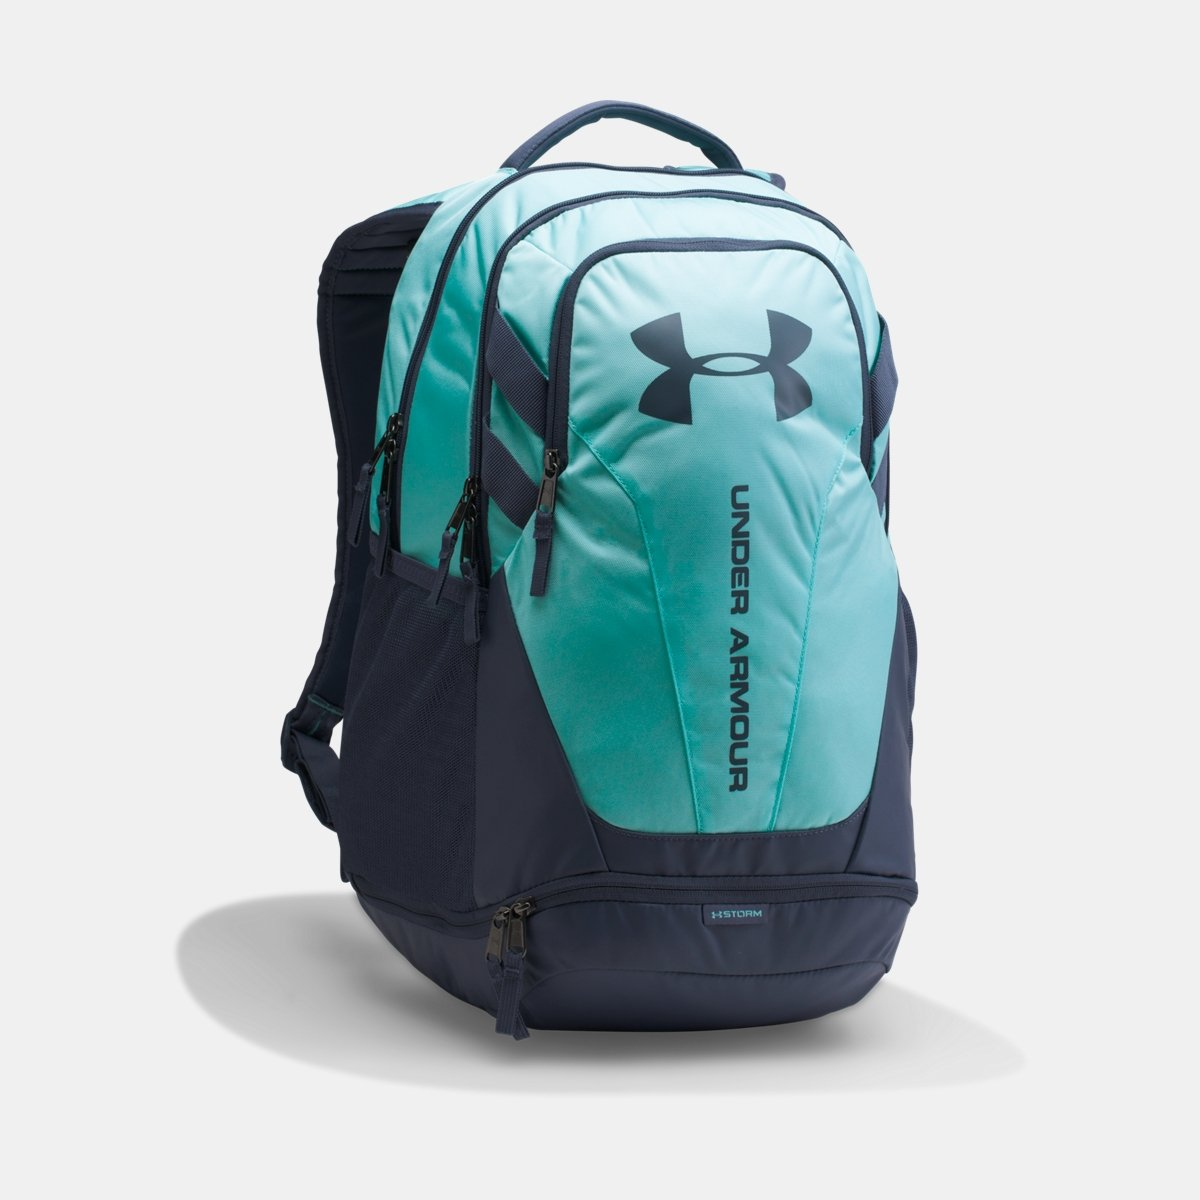 [UNDER ARMOUR] アンダーアーマー Men's UA Hustle 3.0 Backpack BLUE INFINITY/APOLLO GRAY [並行輸入品]   B0753BPNRW